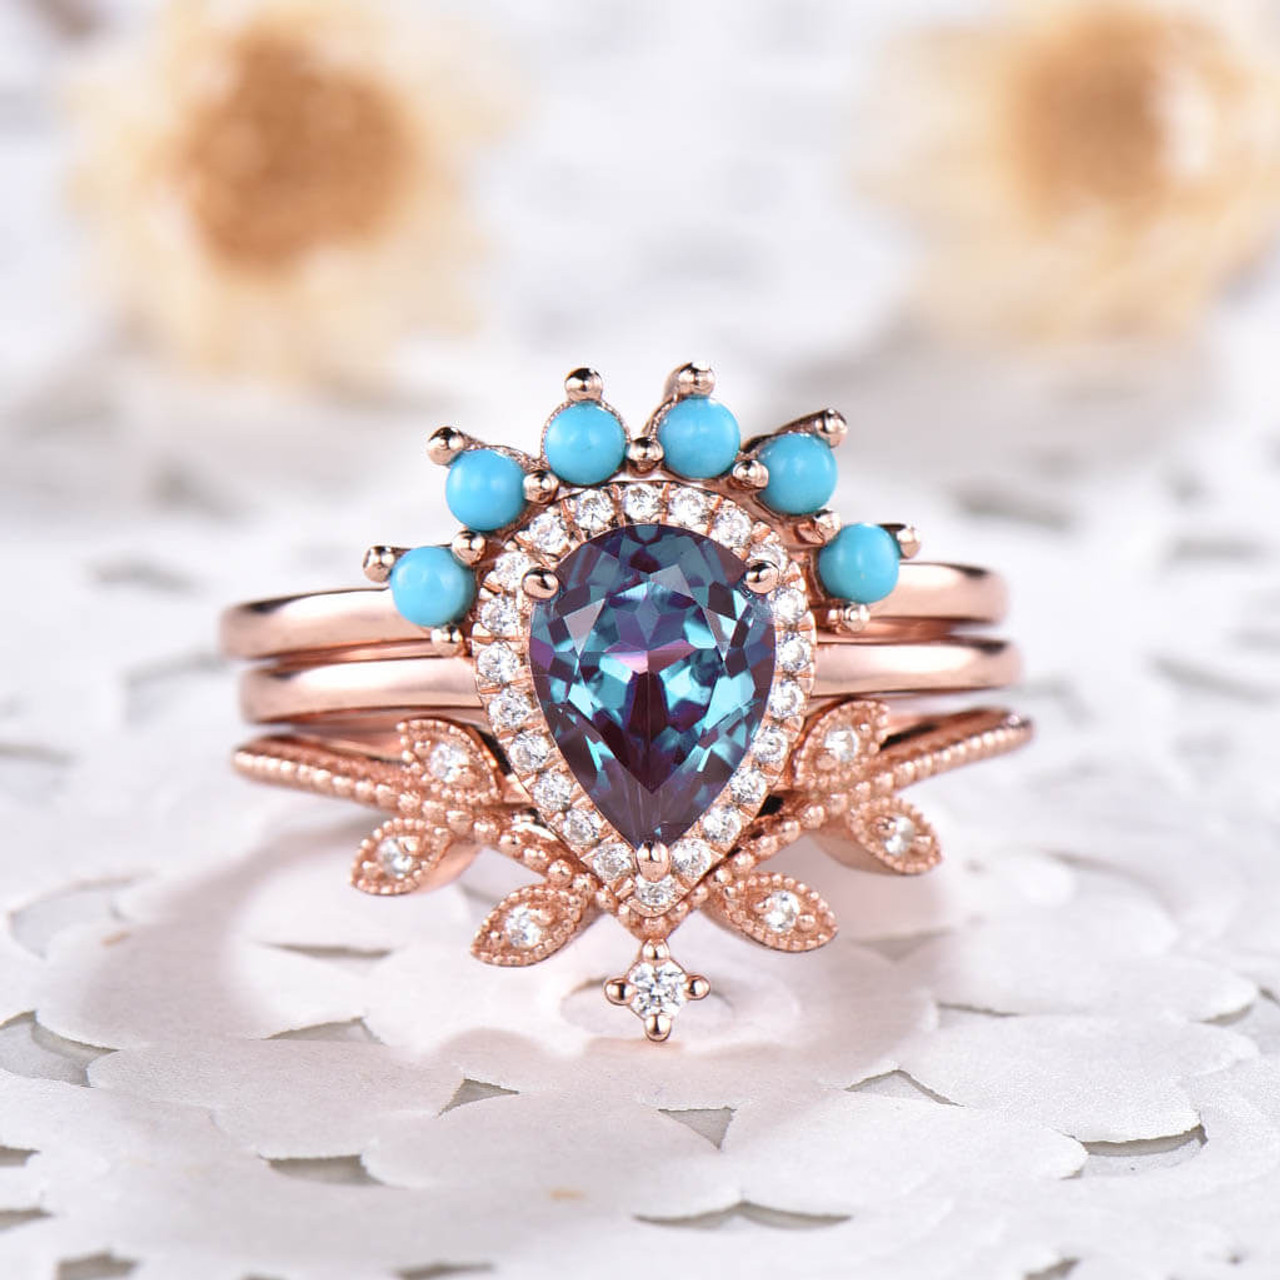 Vintage Pear Shaped Alexandrite Engagement Ring Set Leaf Diamond And Turquoise Ring